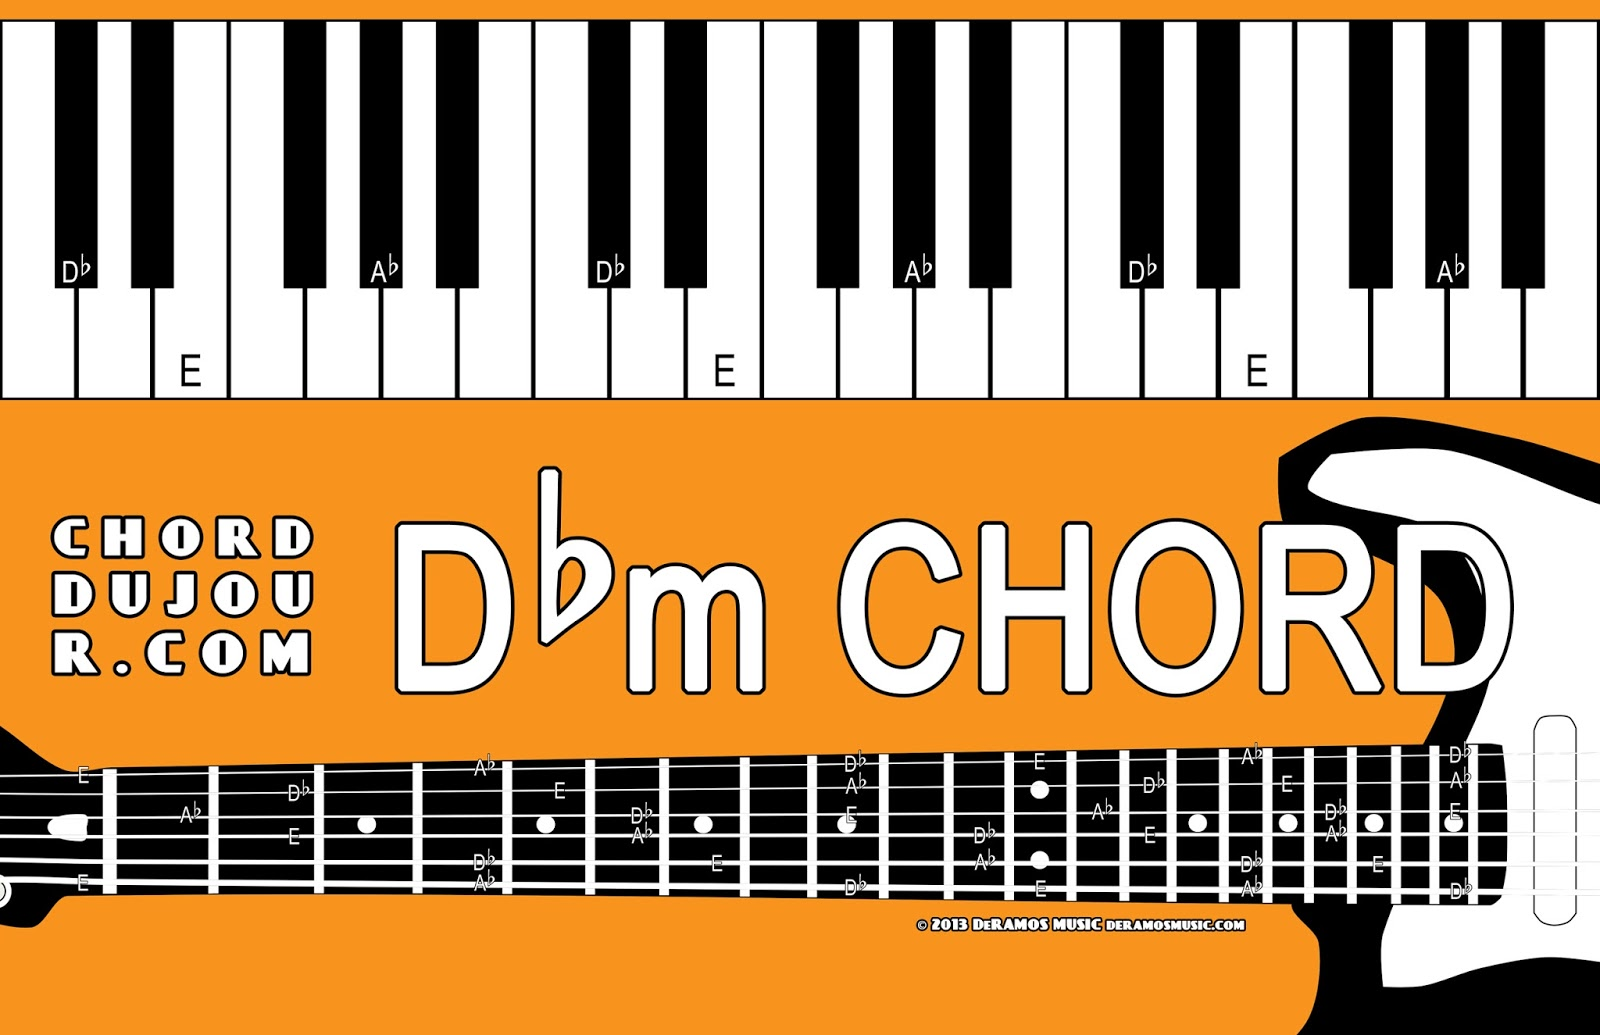 Chord du jour september 2013 dictionary dbm chord hexwebz Image collections